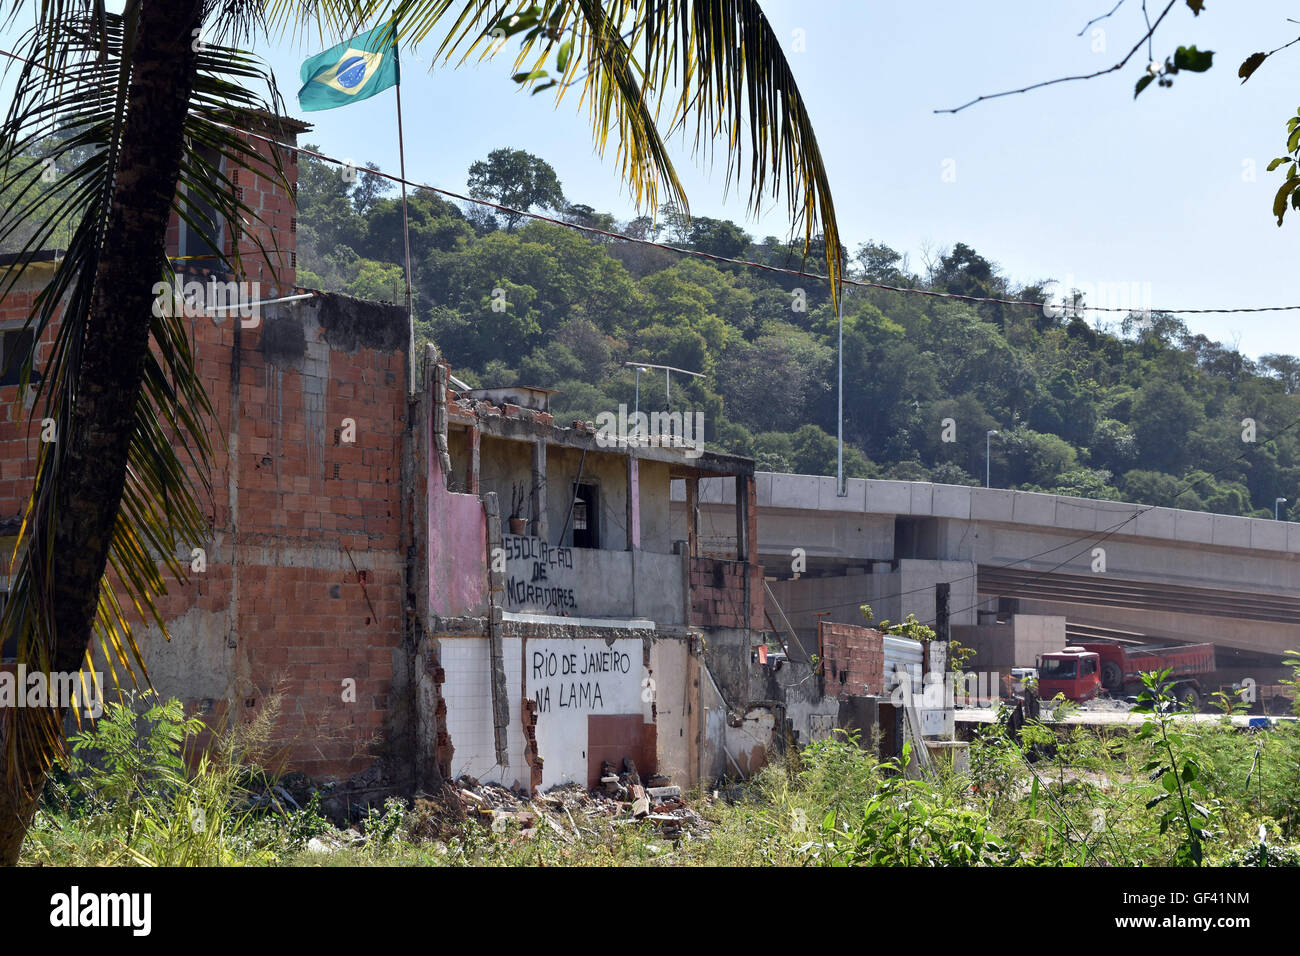 Rio de Janeiro, Brazil. 27th Apr, 2016. Destroyed apartments of the Favela Vola Autodromo by the Olympic Stadium - Stock Image